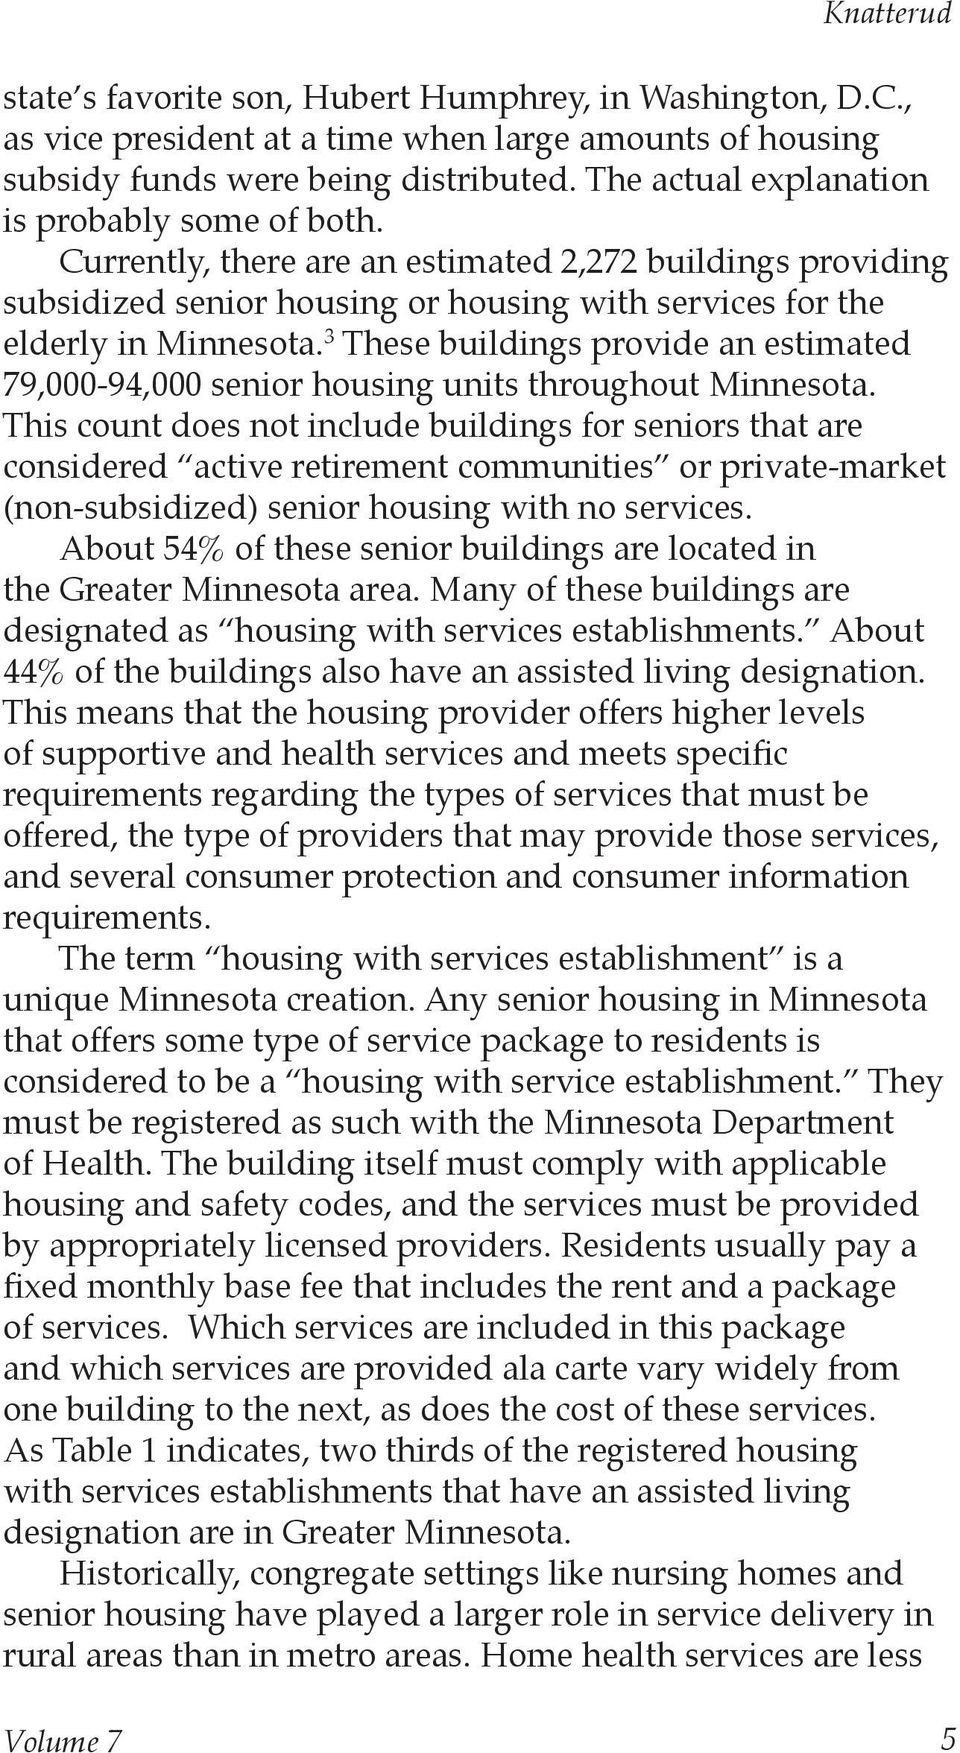 3 These buildings provide an estimated 79,000-94,000 senior housing units throughout Minnesota.